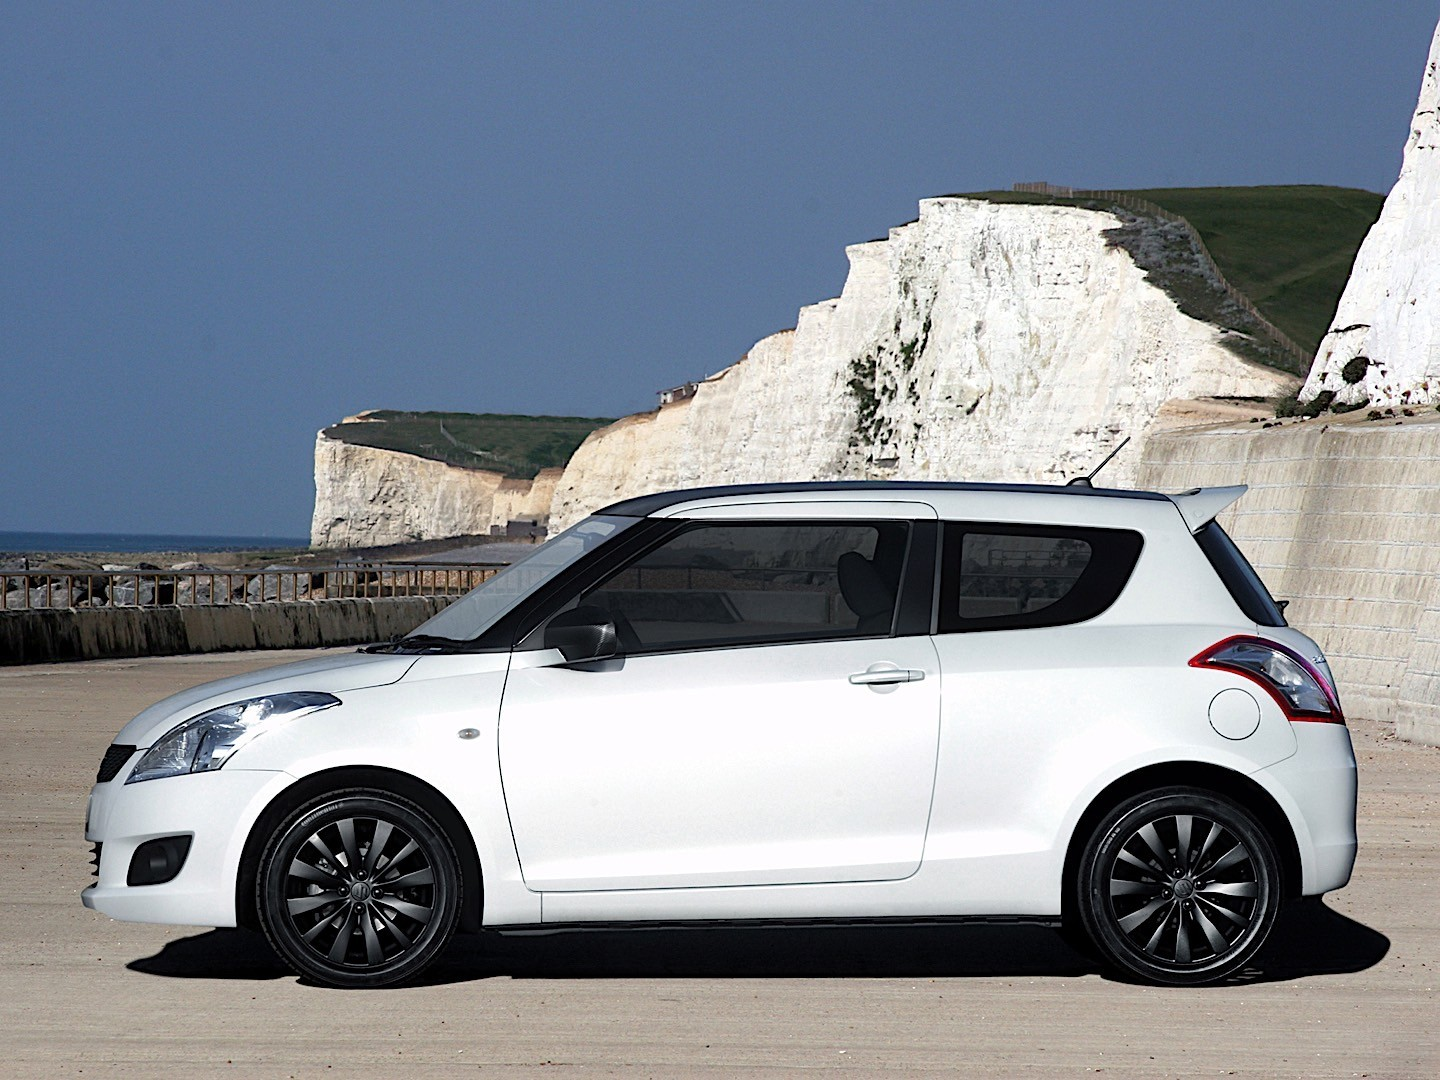 SUZUKI Swift 3 Doors - 2010, 2011, 2012, 2013 - autoevolution